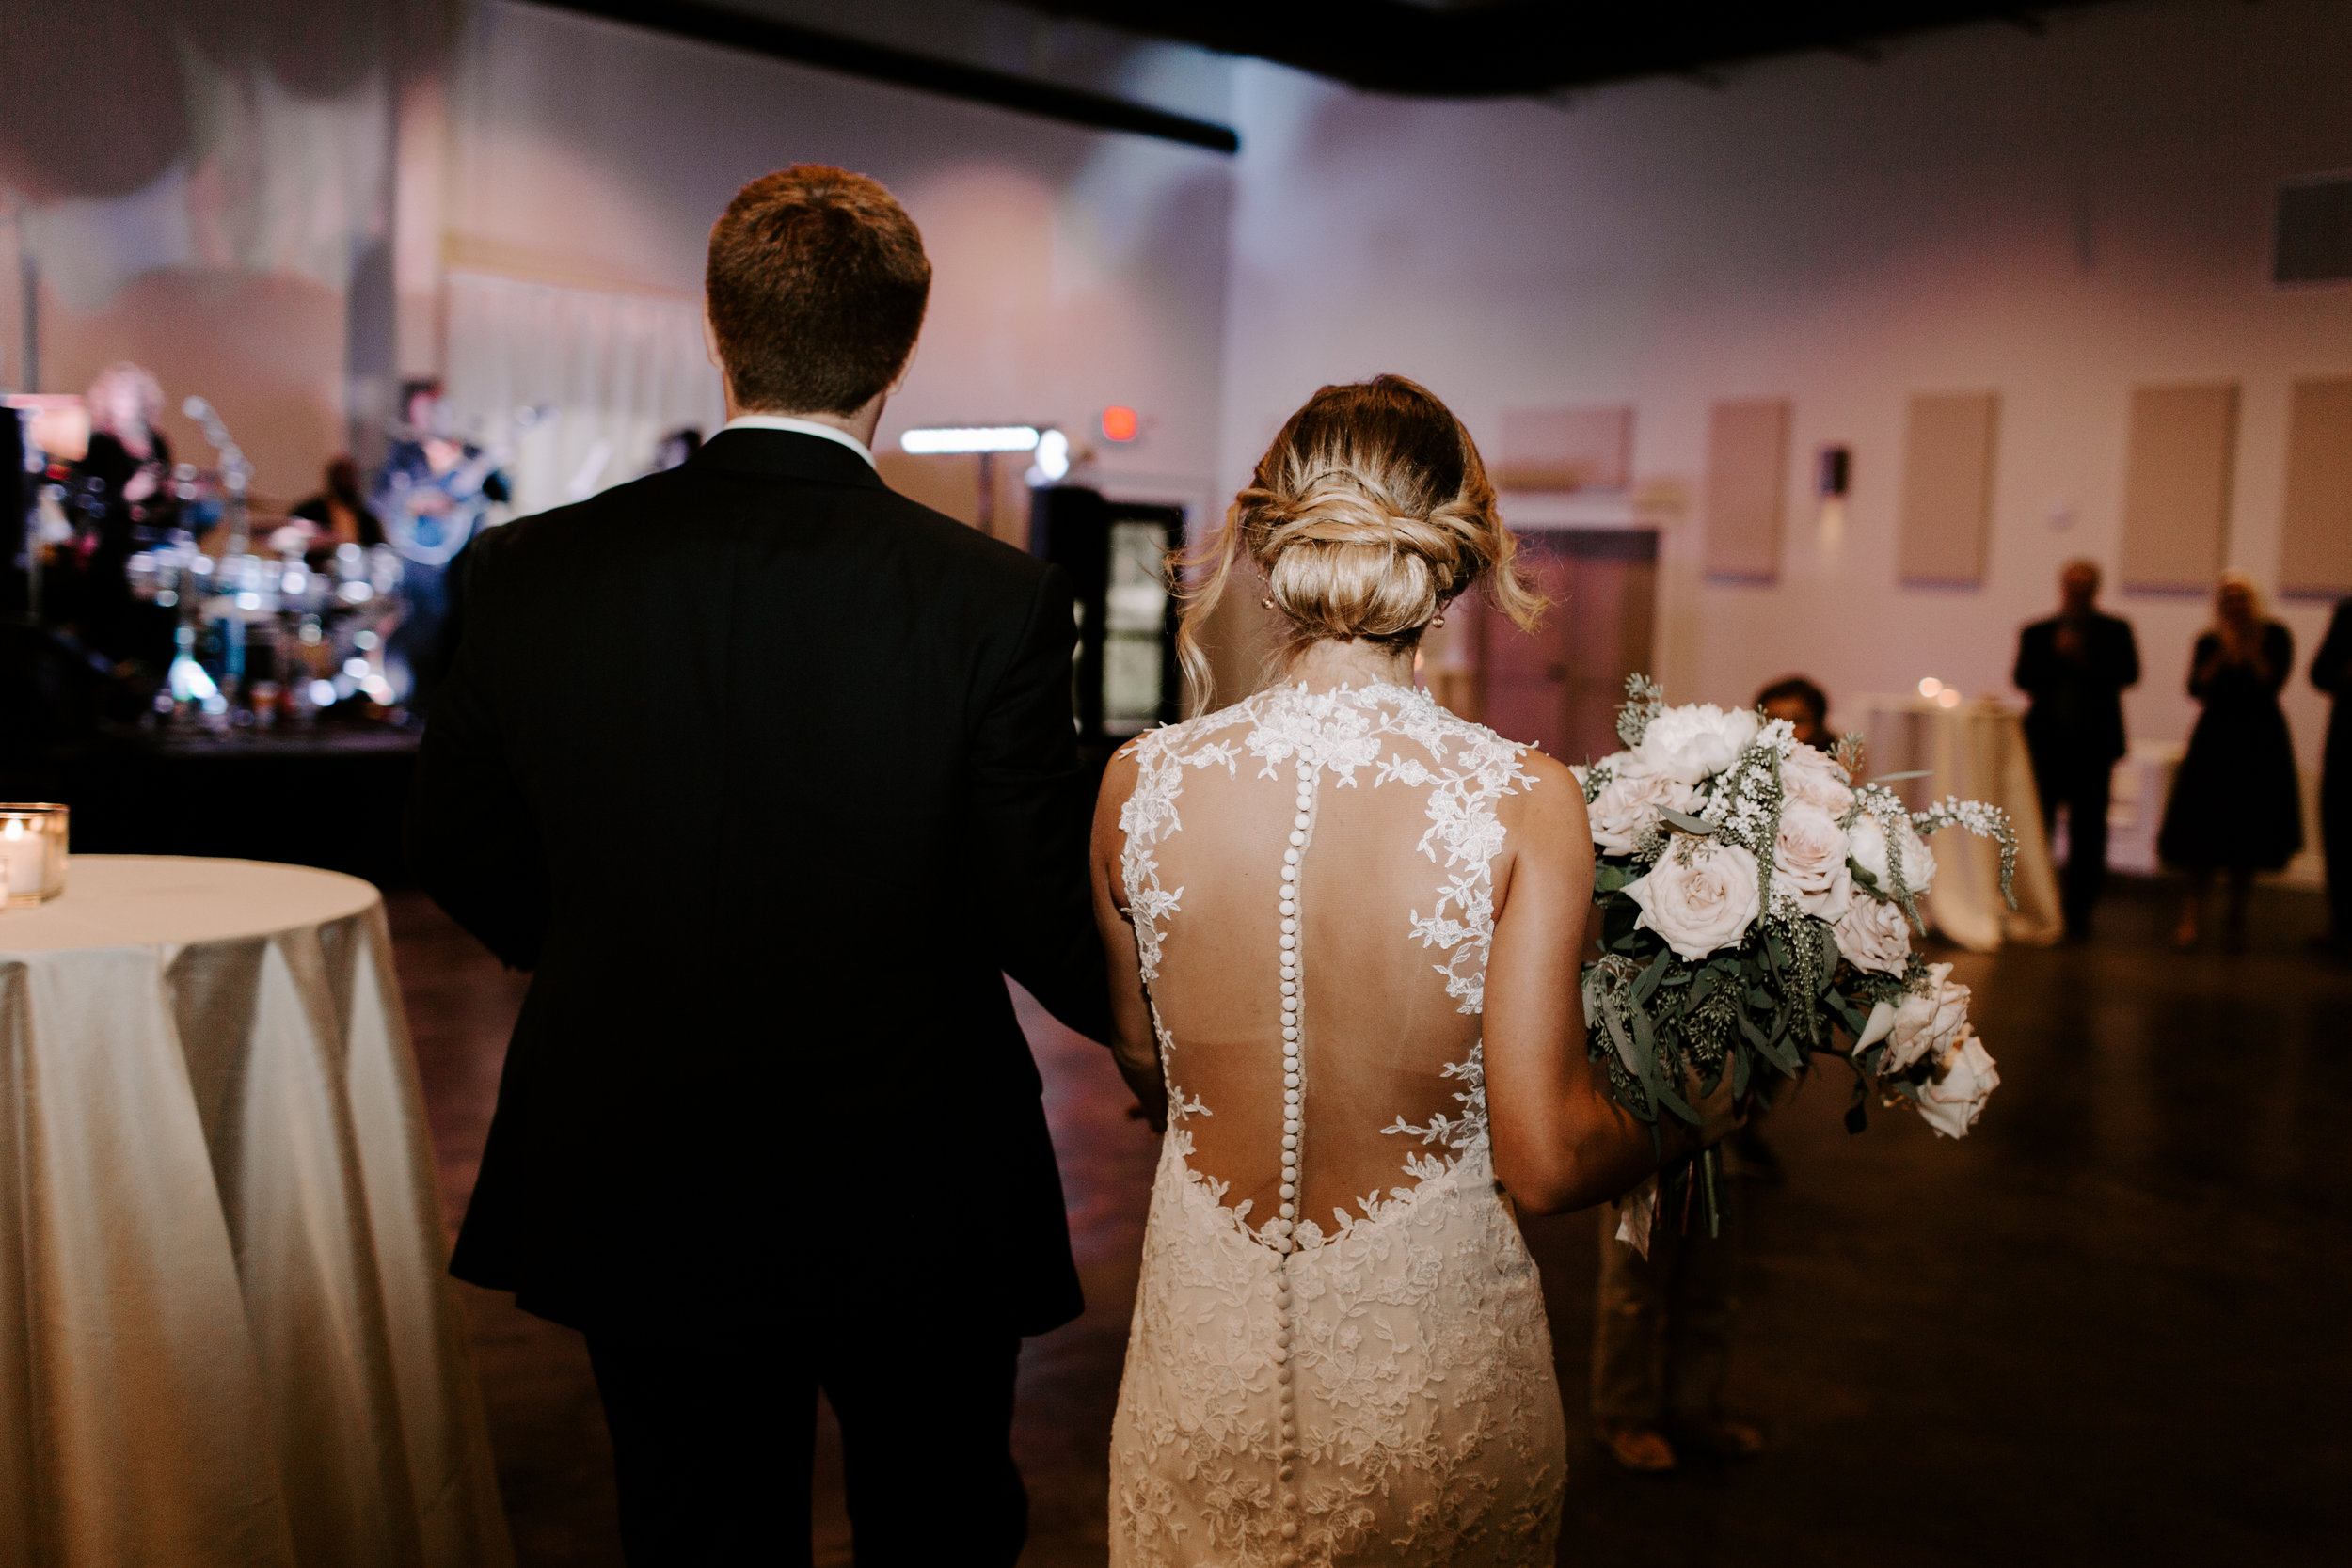 cailin+hails_destination_wedding_fairhope_daphne_mobile_alabama_madisonrylee_0127.jpg